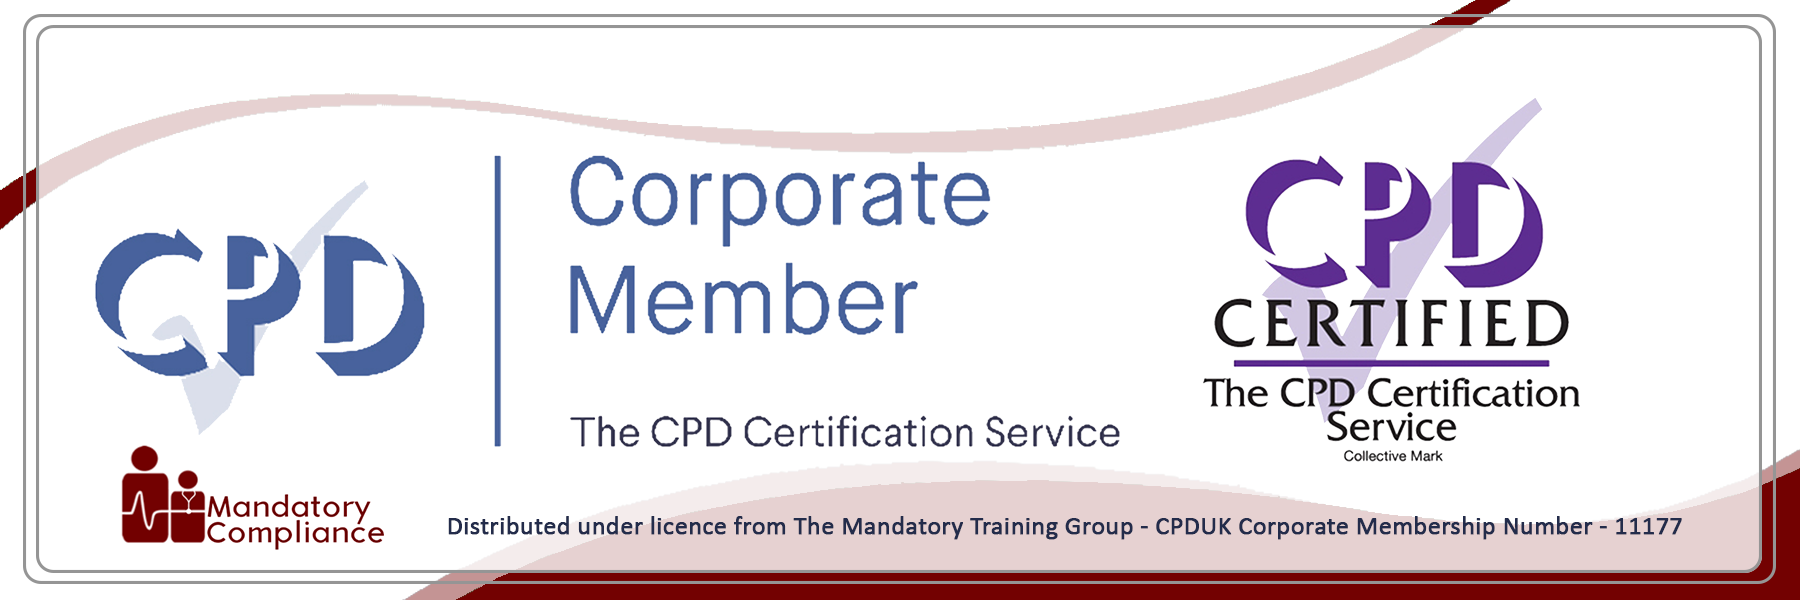 Supervising Others Training - Online Training Course - CPD Accredited - Mandatory Compliance UK -